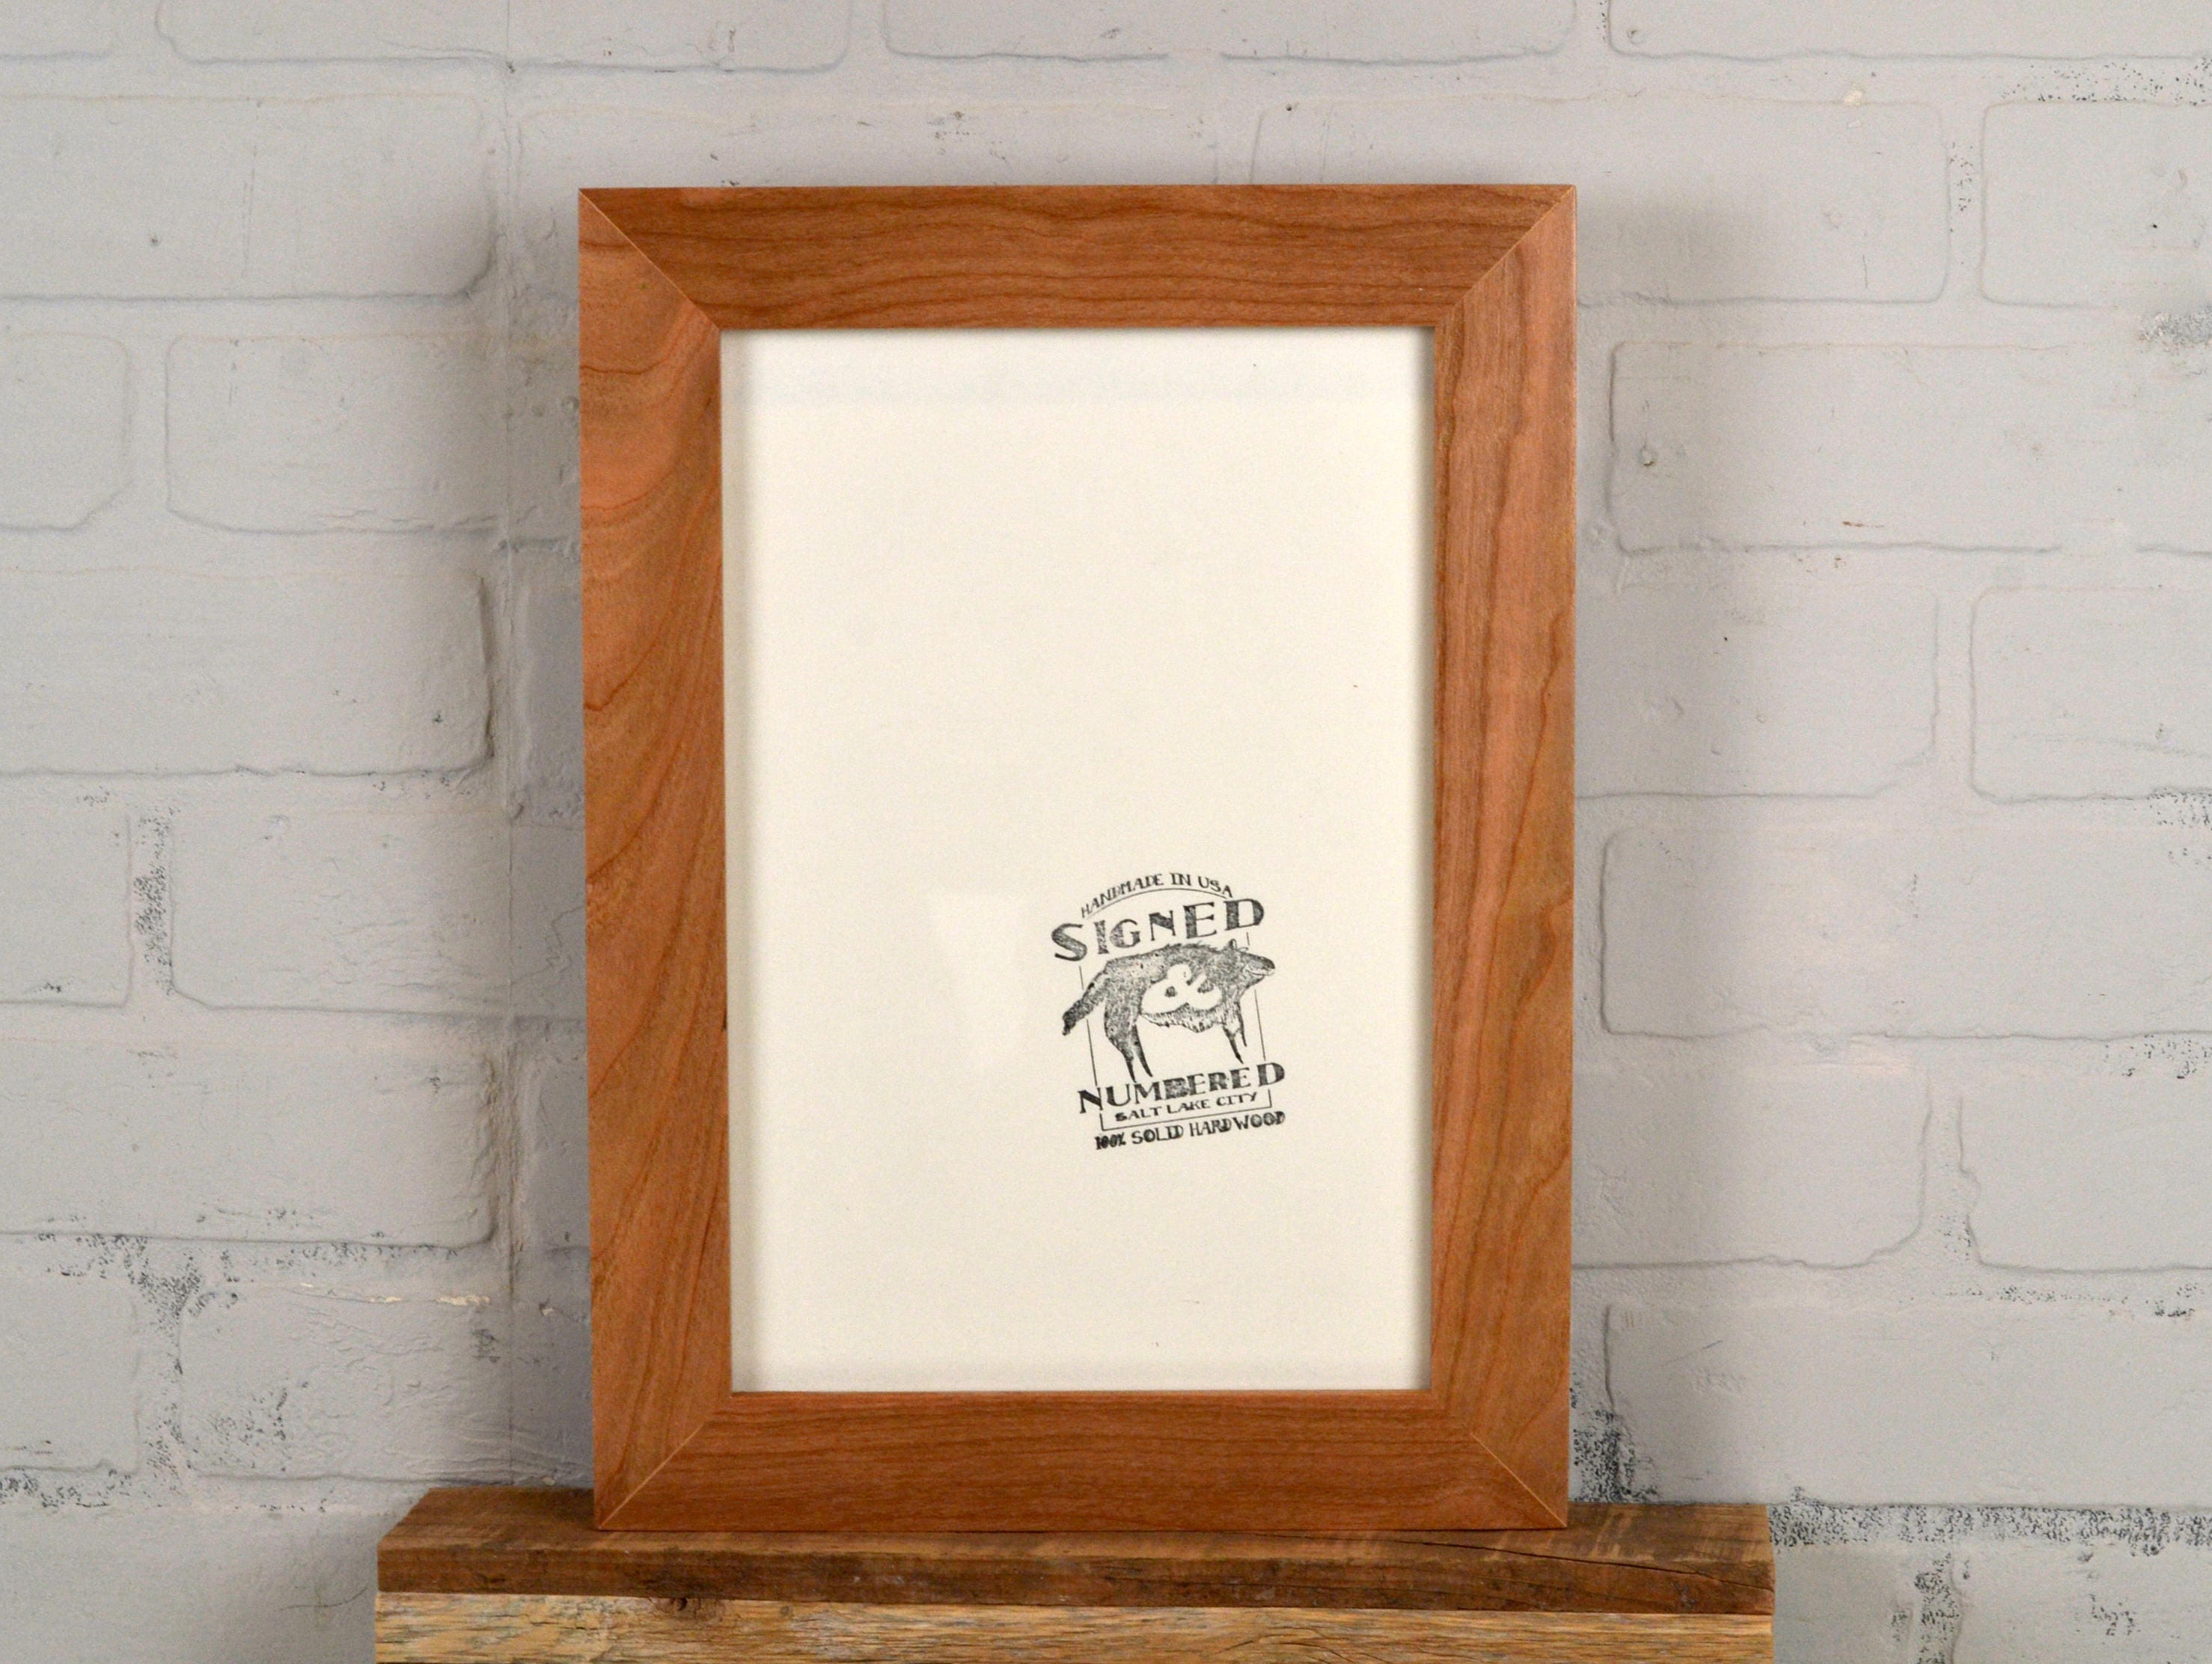 8x12 picture frame in 15 wide solid natural cherry wood frame sold by signedandnumbered jeuxipadfo Choice Image